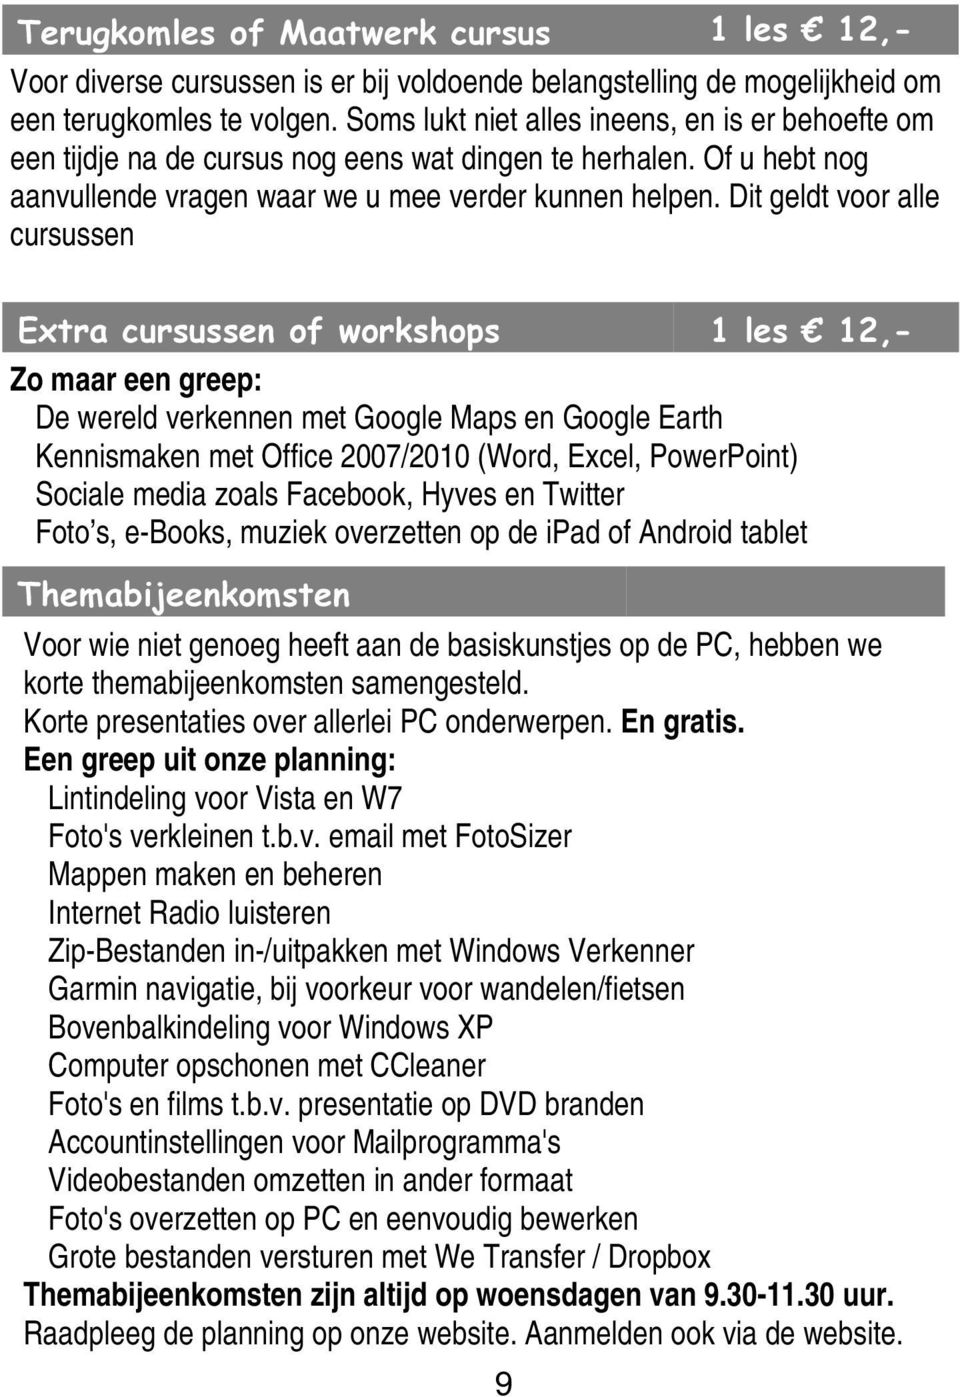 Dit geldt voor alle cursussen Extra cursussen of workshops 1 les 12,- Zo maar een greep: De wereld verkennen met Google Maps en Google Earth Kennismaken met Office 2007/2010 (Word, Excel, PowerPoint)